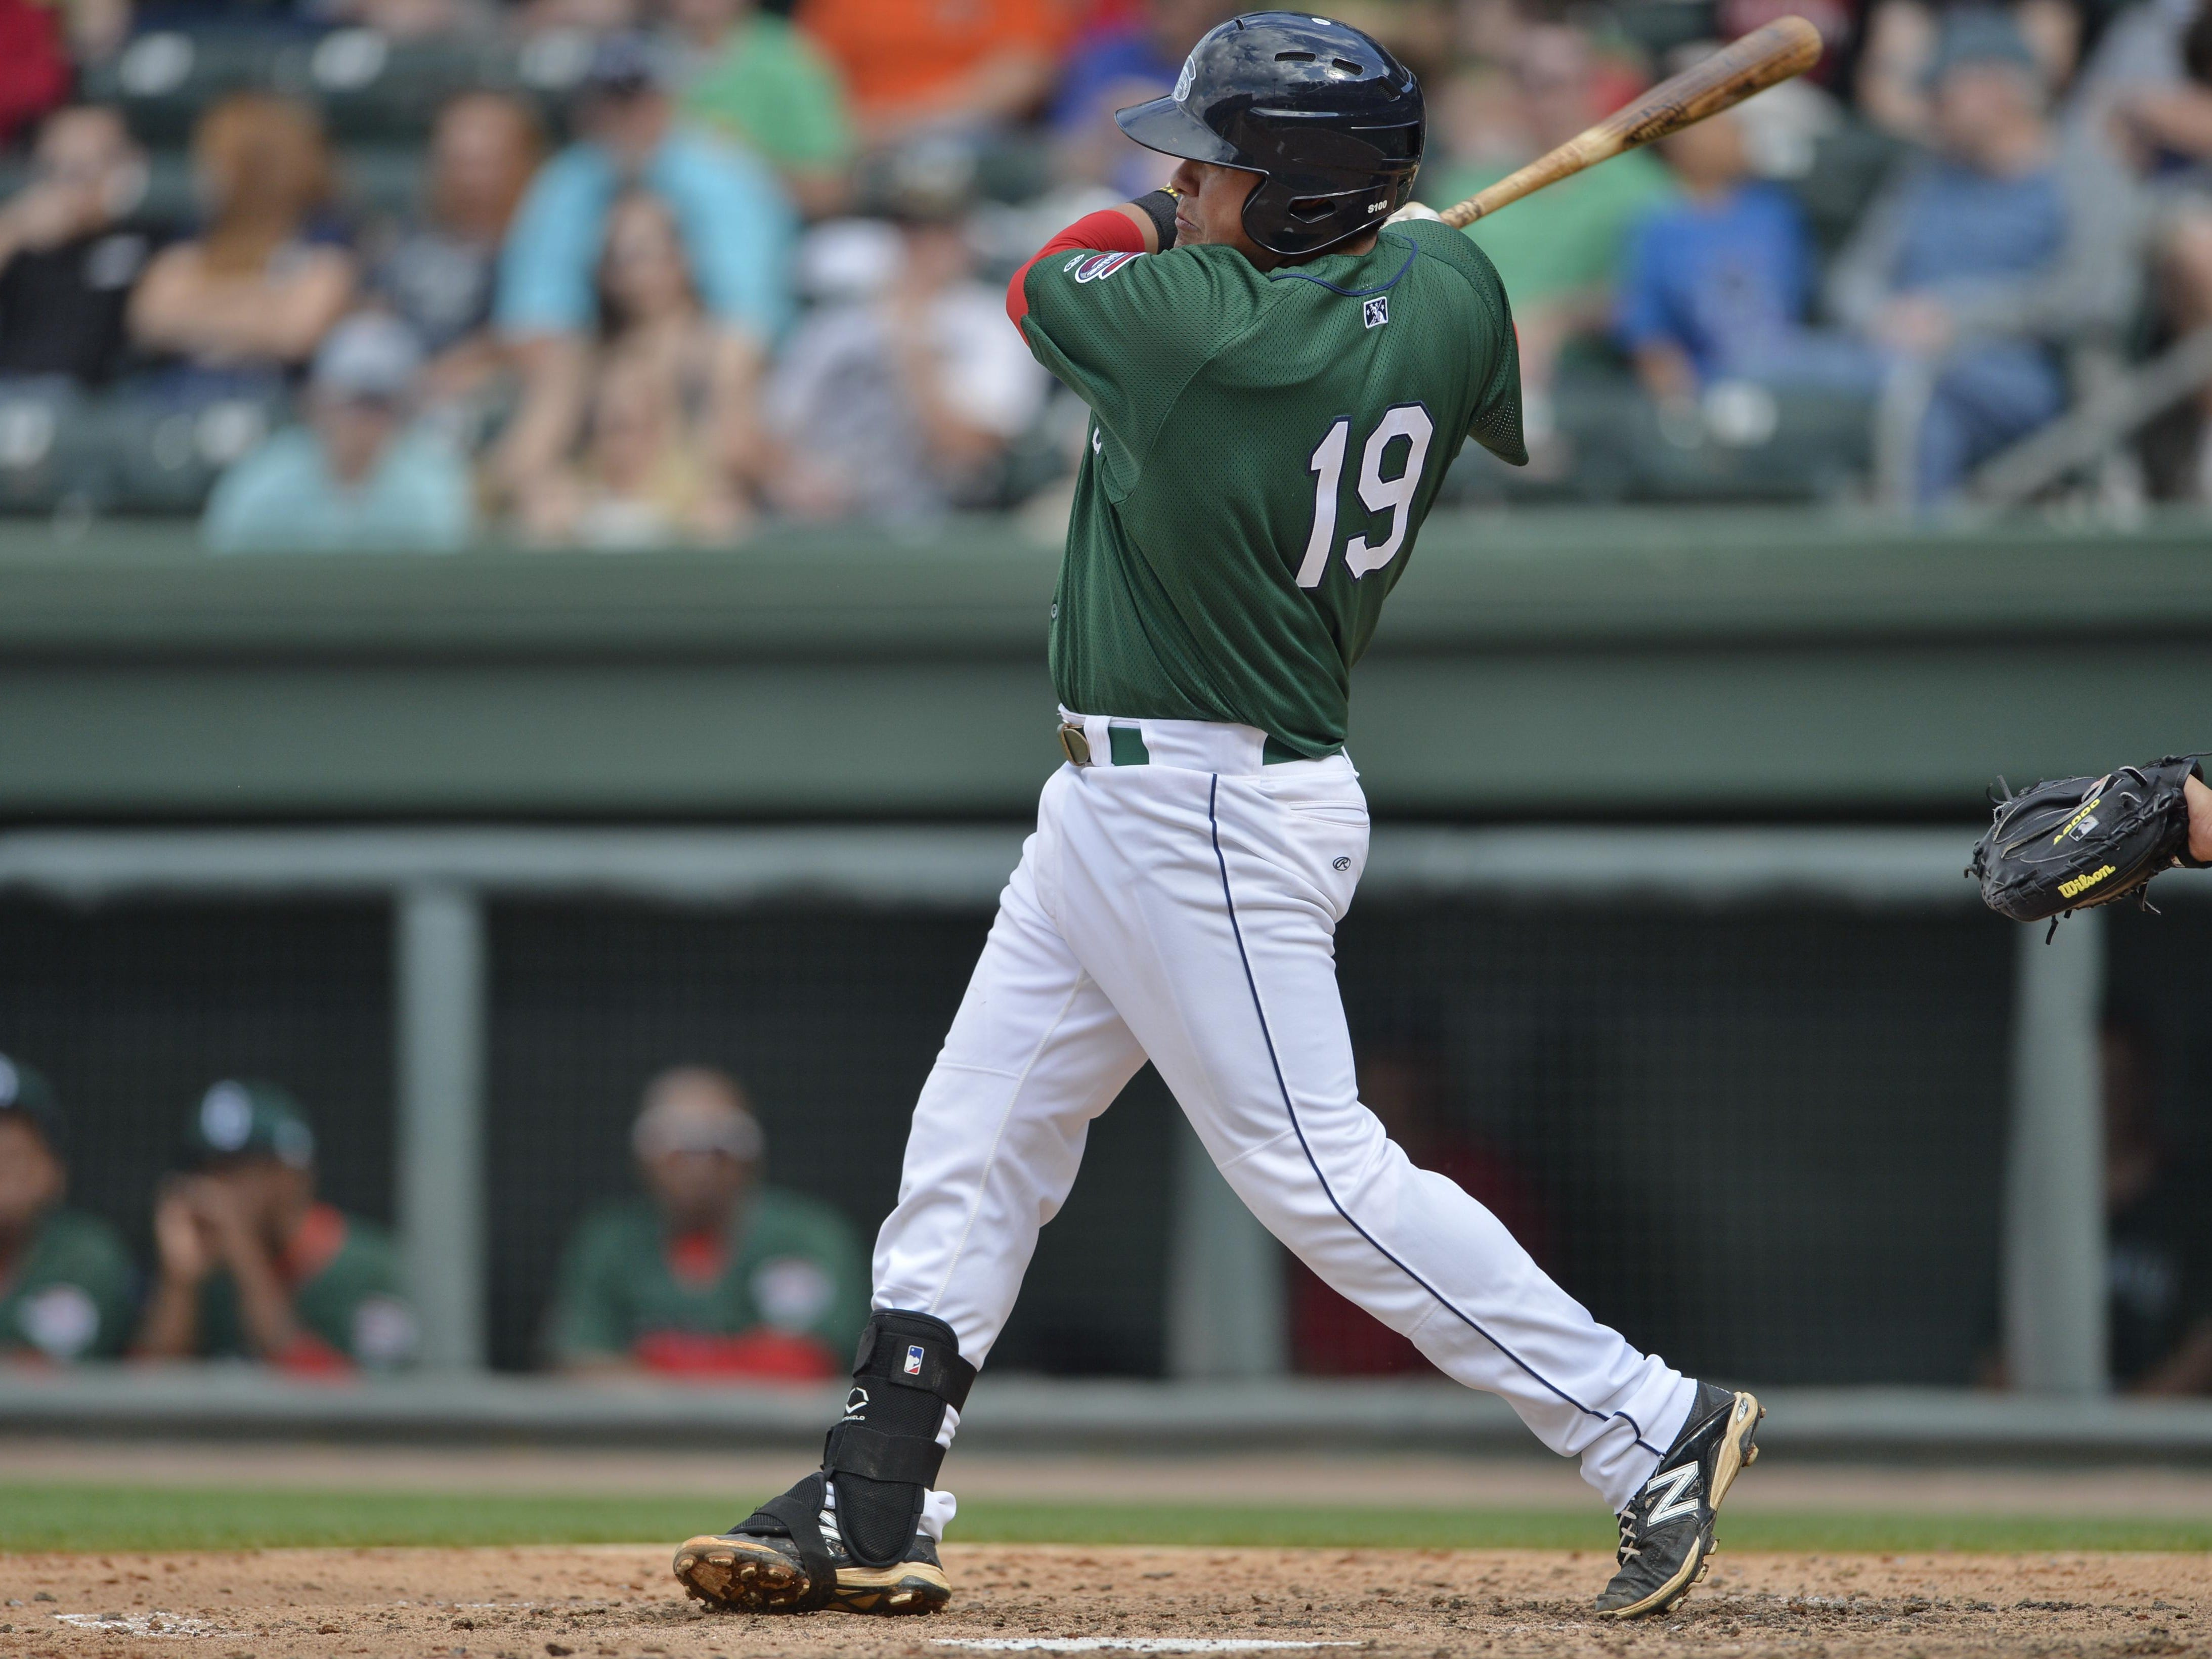 Cisco Tellez had a double for one of Greenville's 12 hits Saturday.